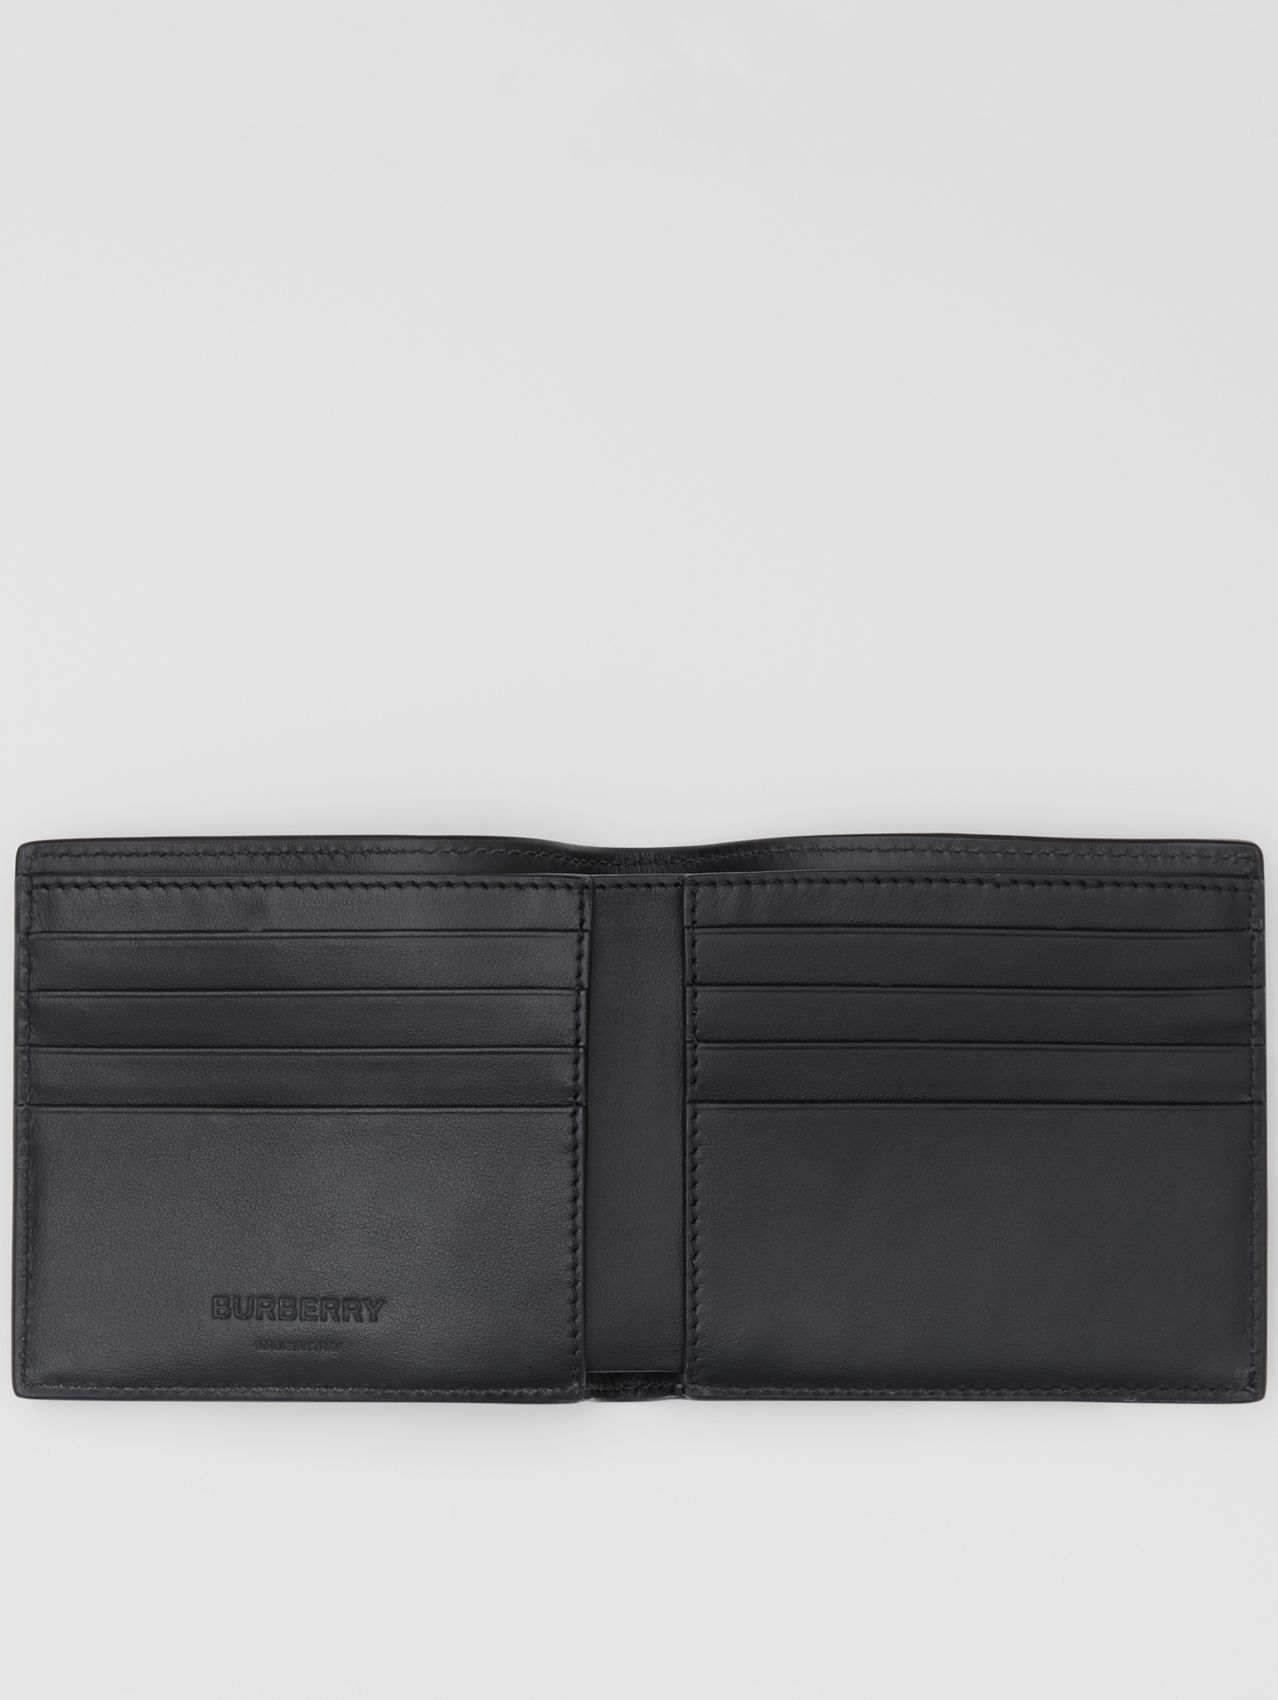 Logo and Icon Stripe Print International Bifold Wallet in Black